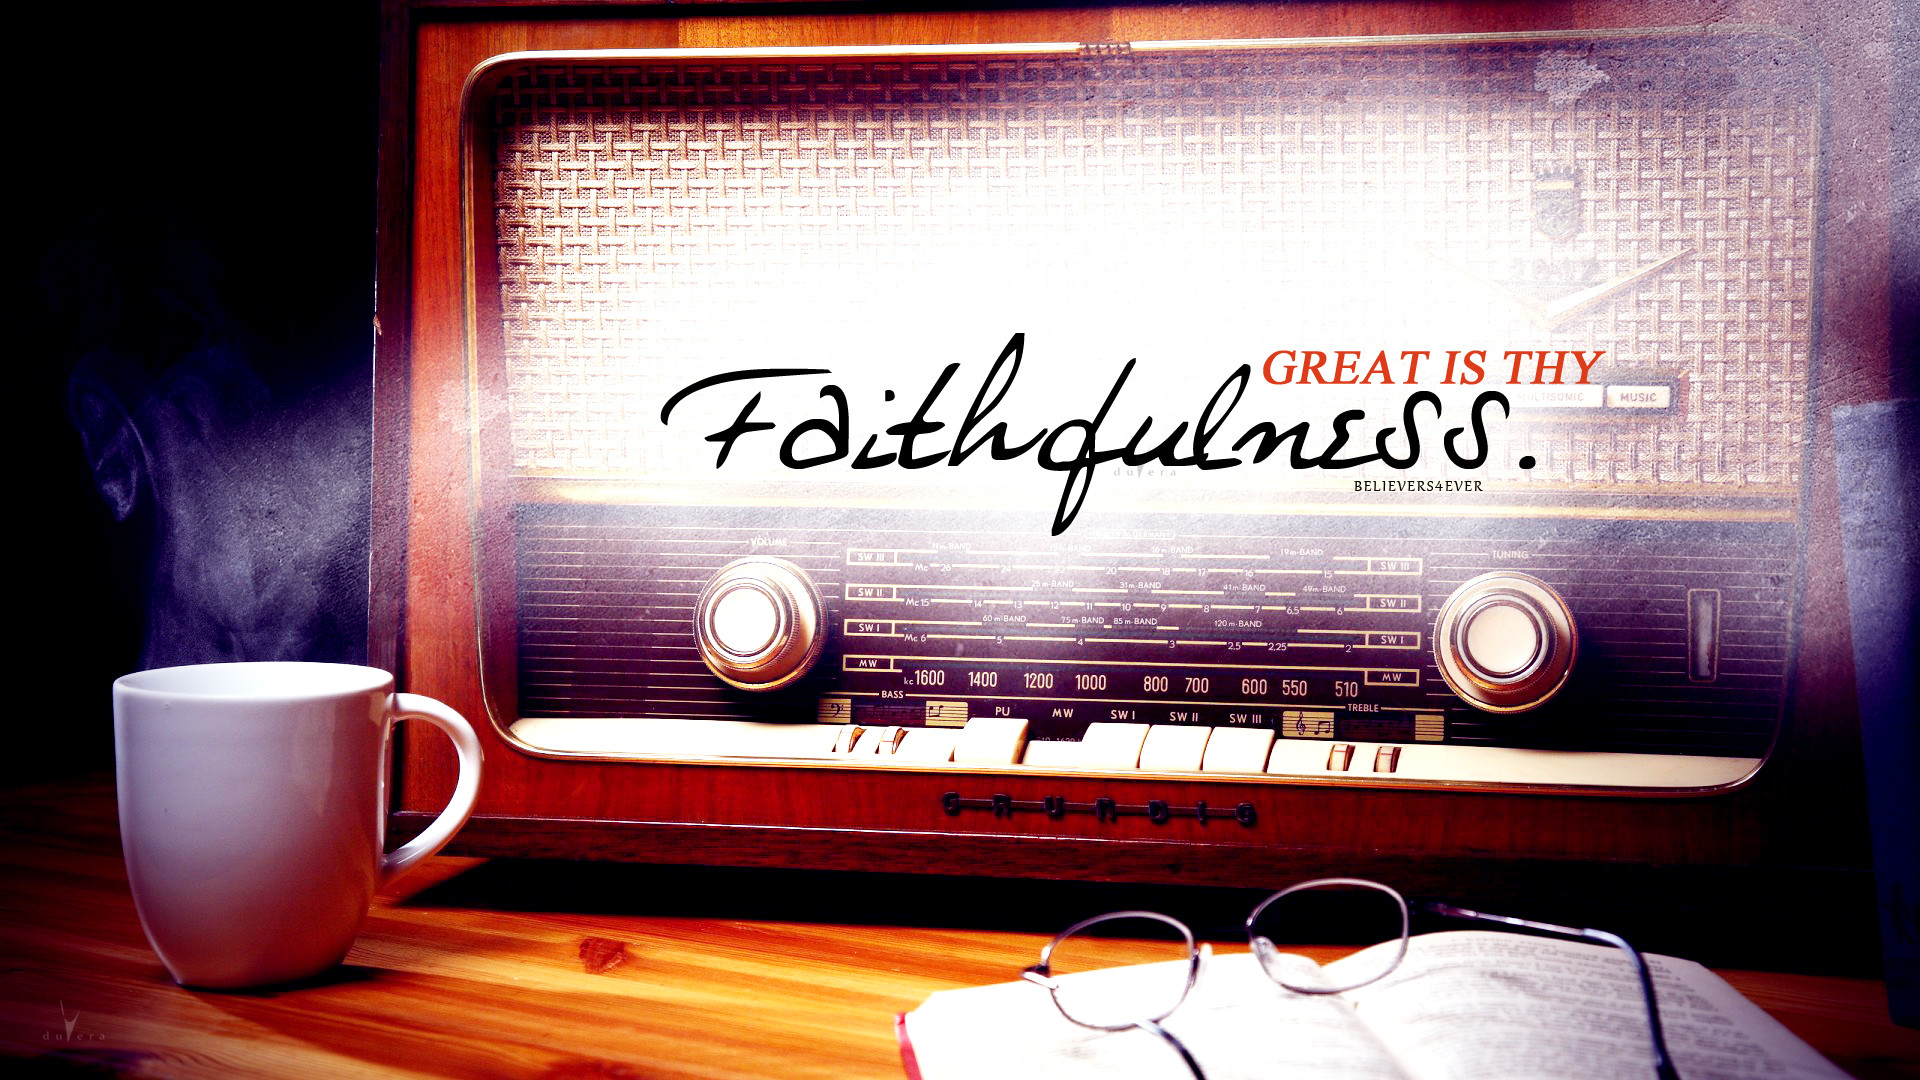 Res: 1920x1080, Great is thy faithfulness